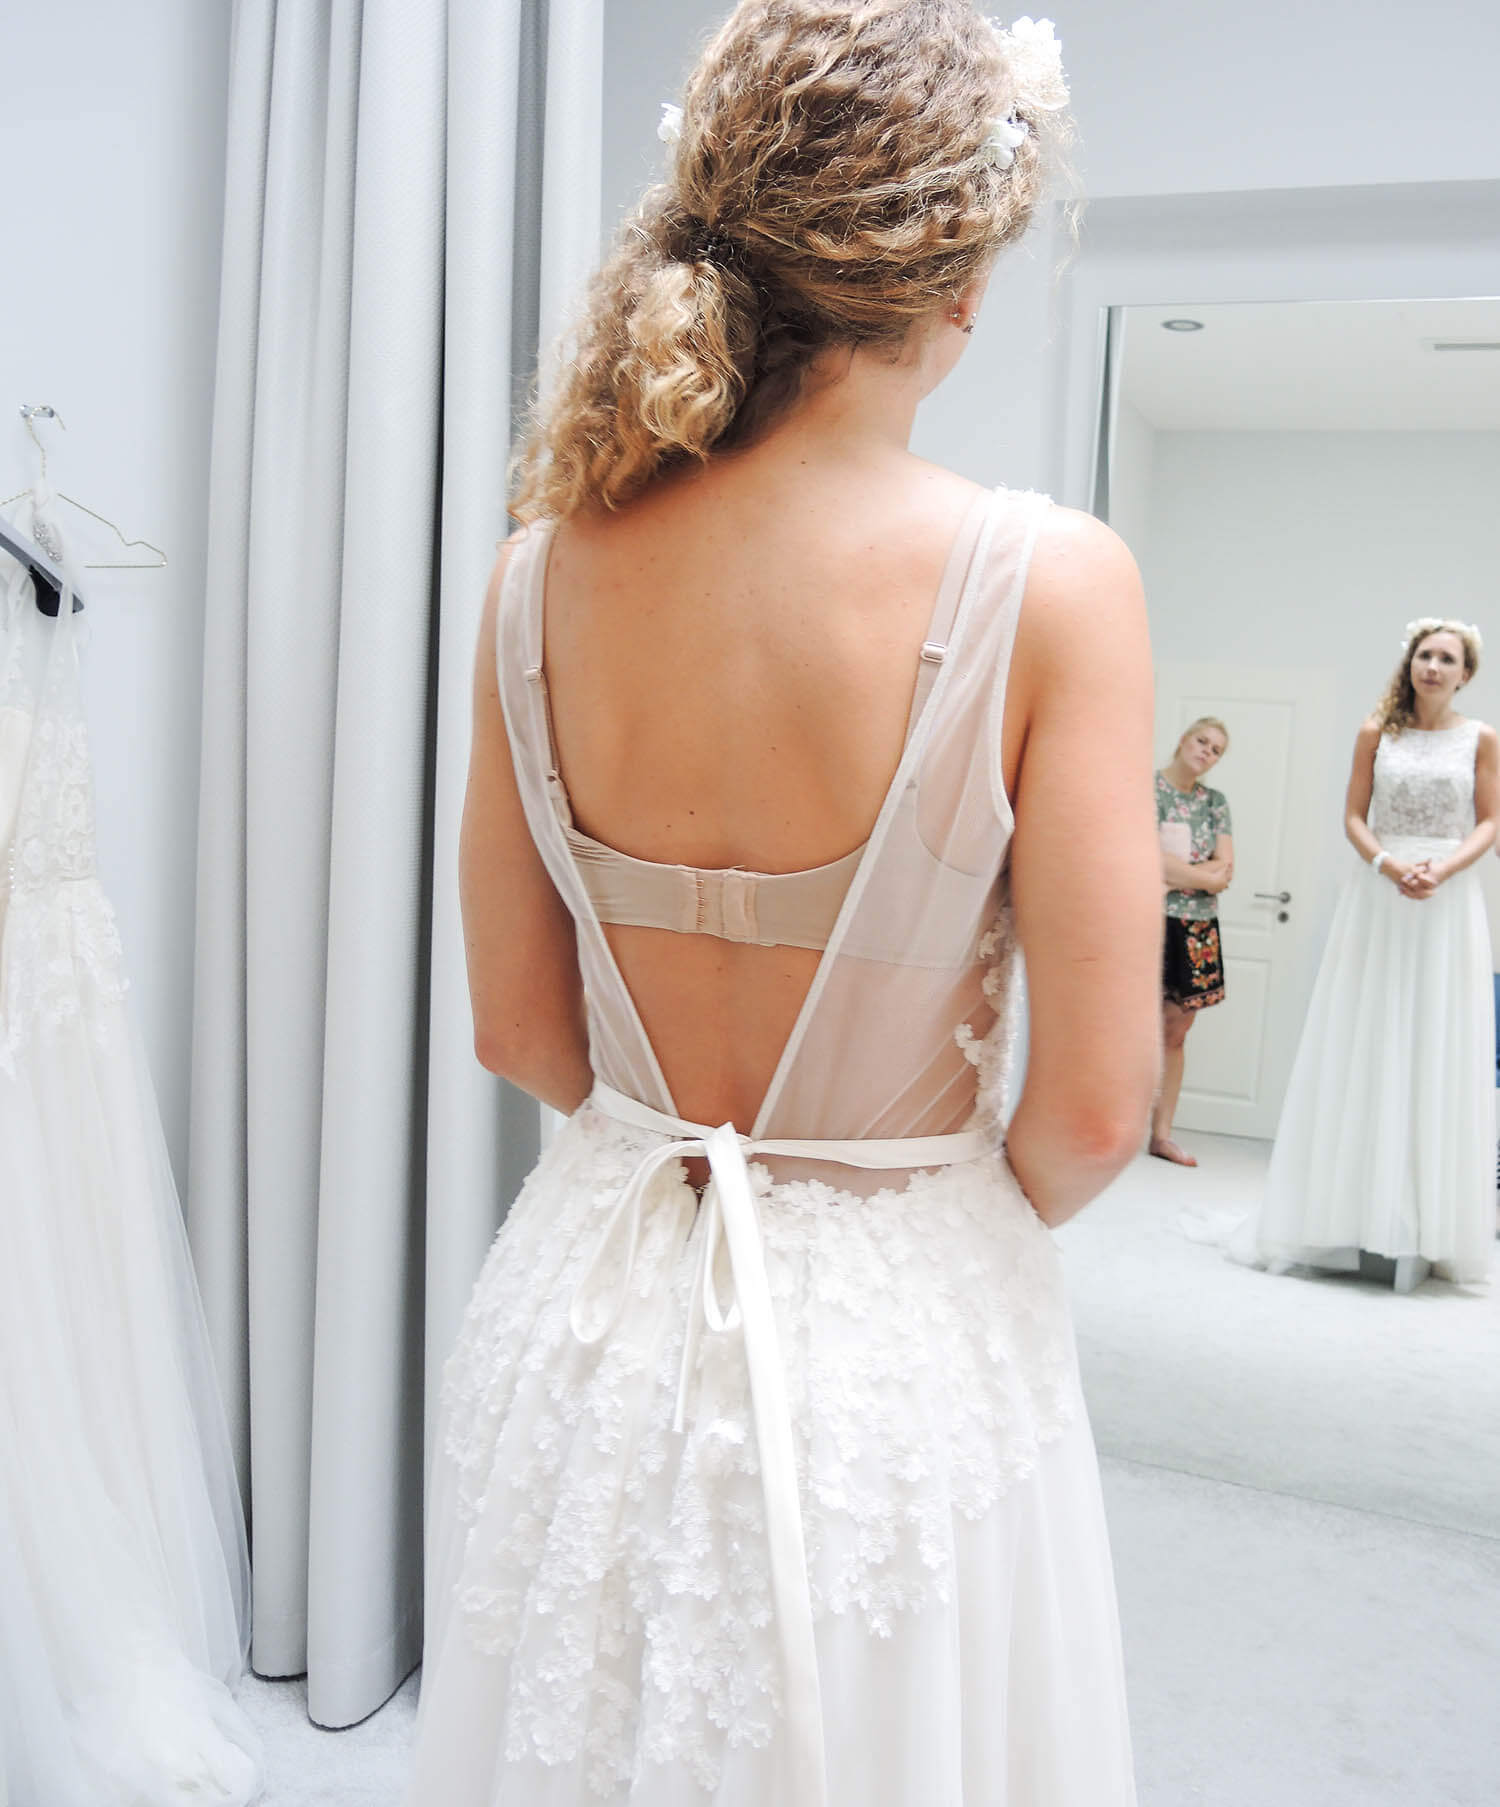 Kationette-fashionblog-lifestyle-Wedding-Update-Bride-Dress-fitting-IamYours-Dusseldorf